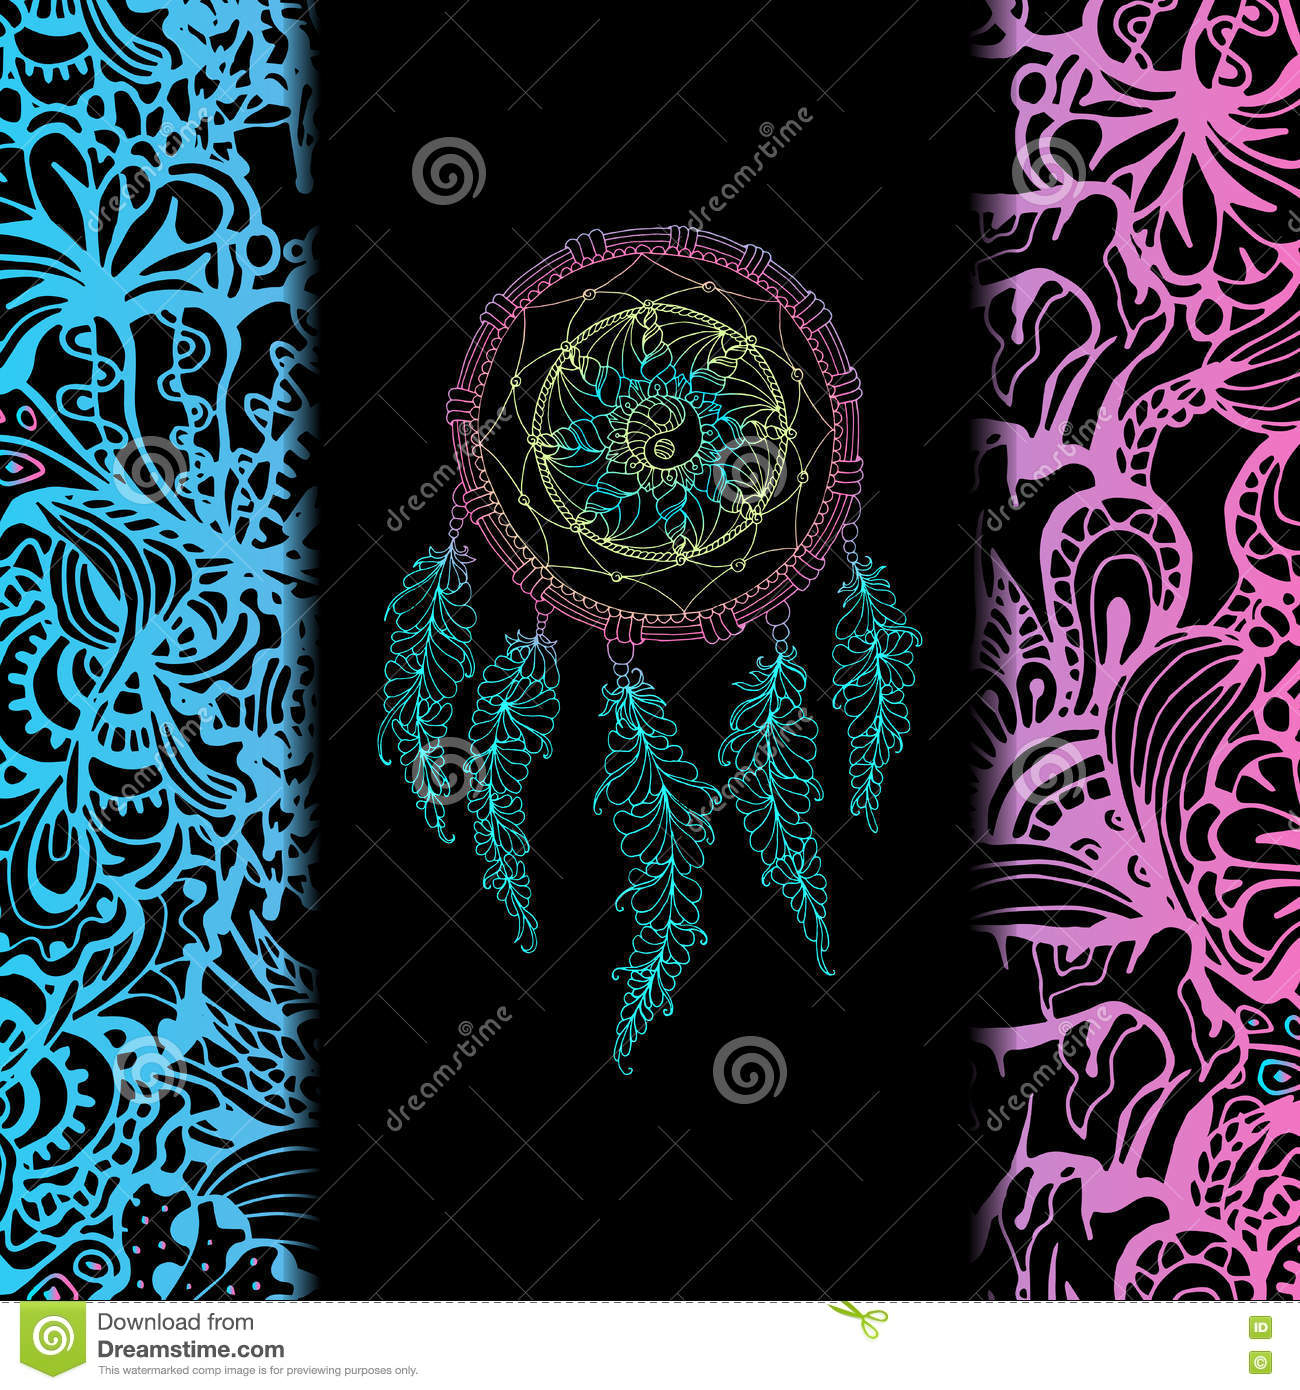 indian dream catcher black background stock vector illustration